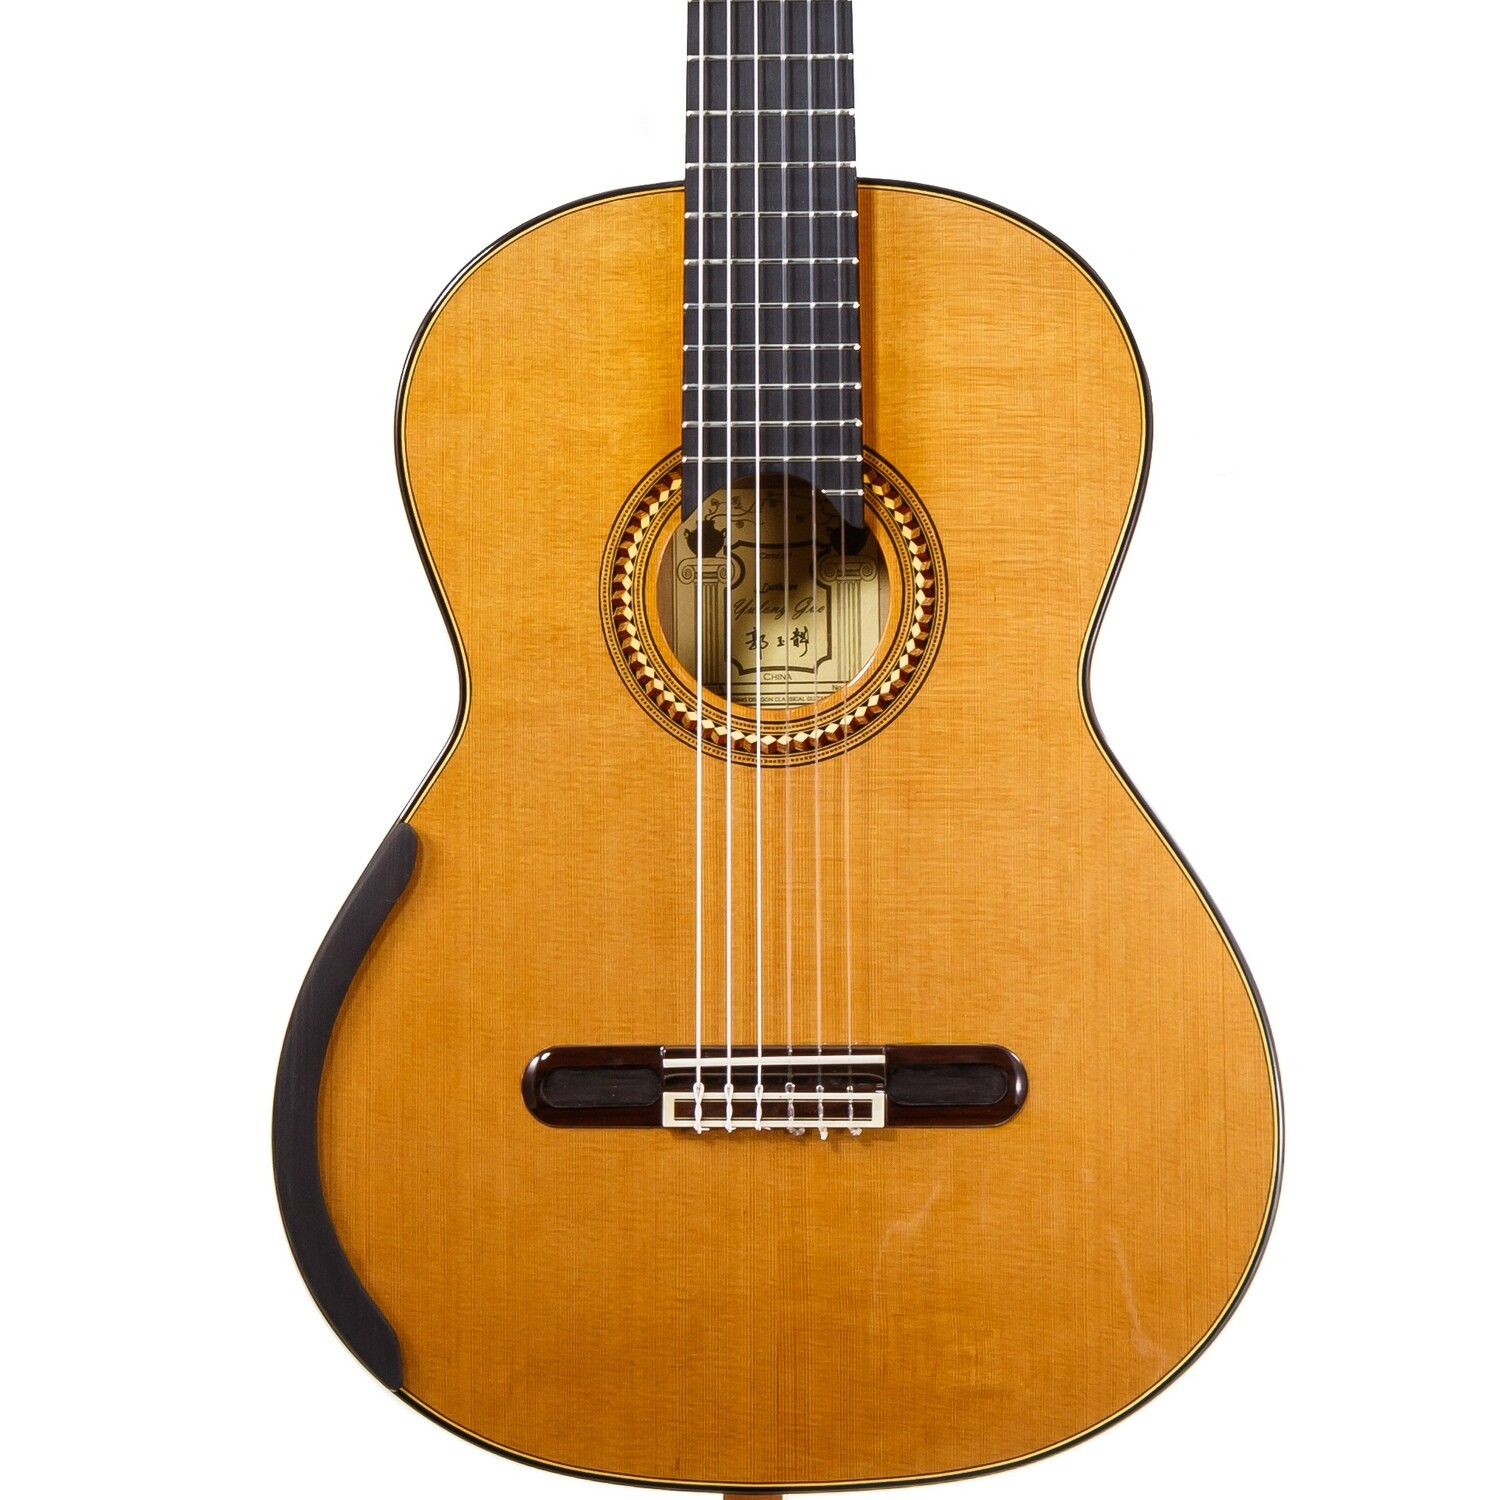 Yulong Guo Concert Model - Cedar Double Top, solid Koa Back/Sides - 650mm Scale Length - 2019-037